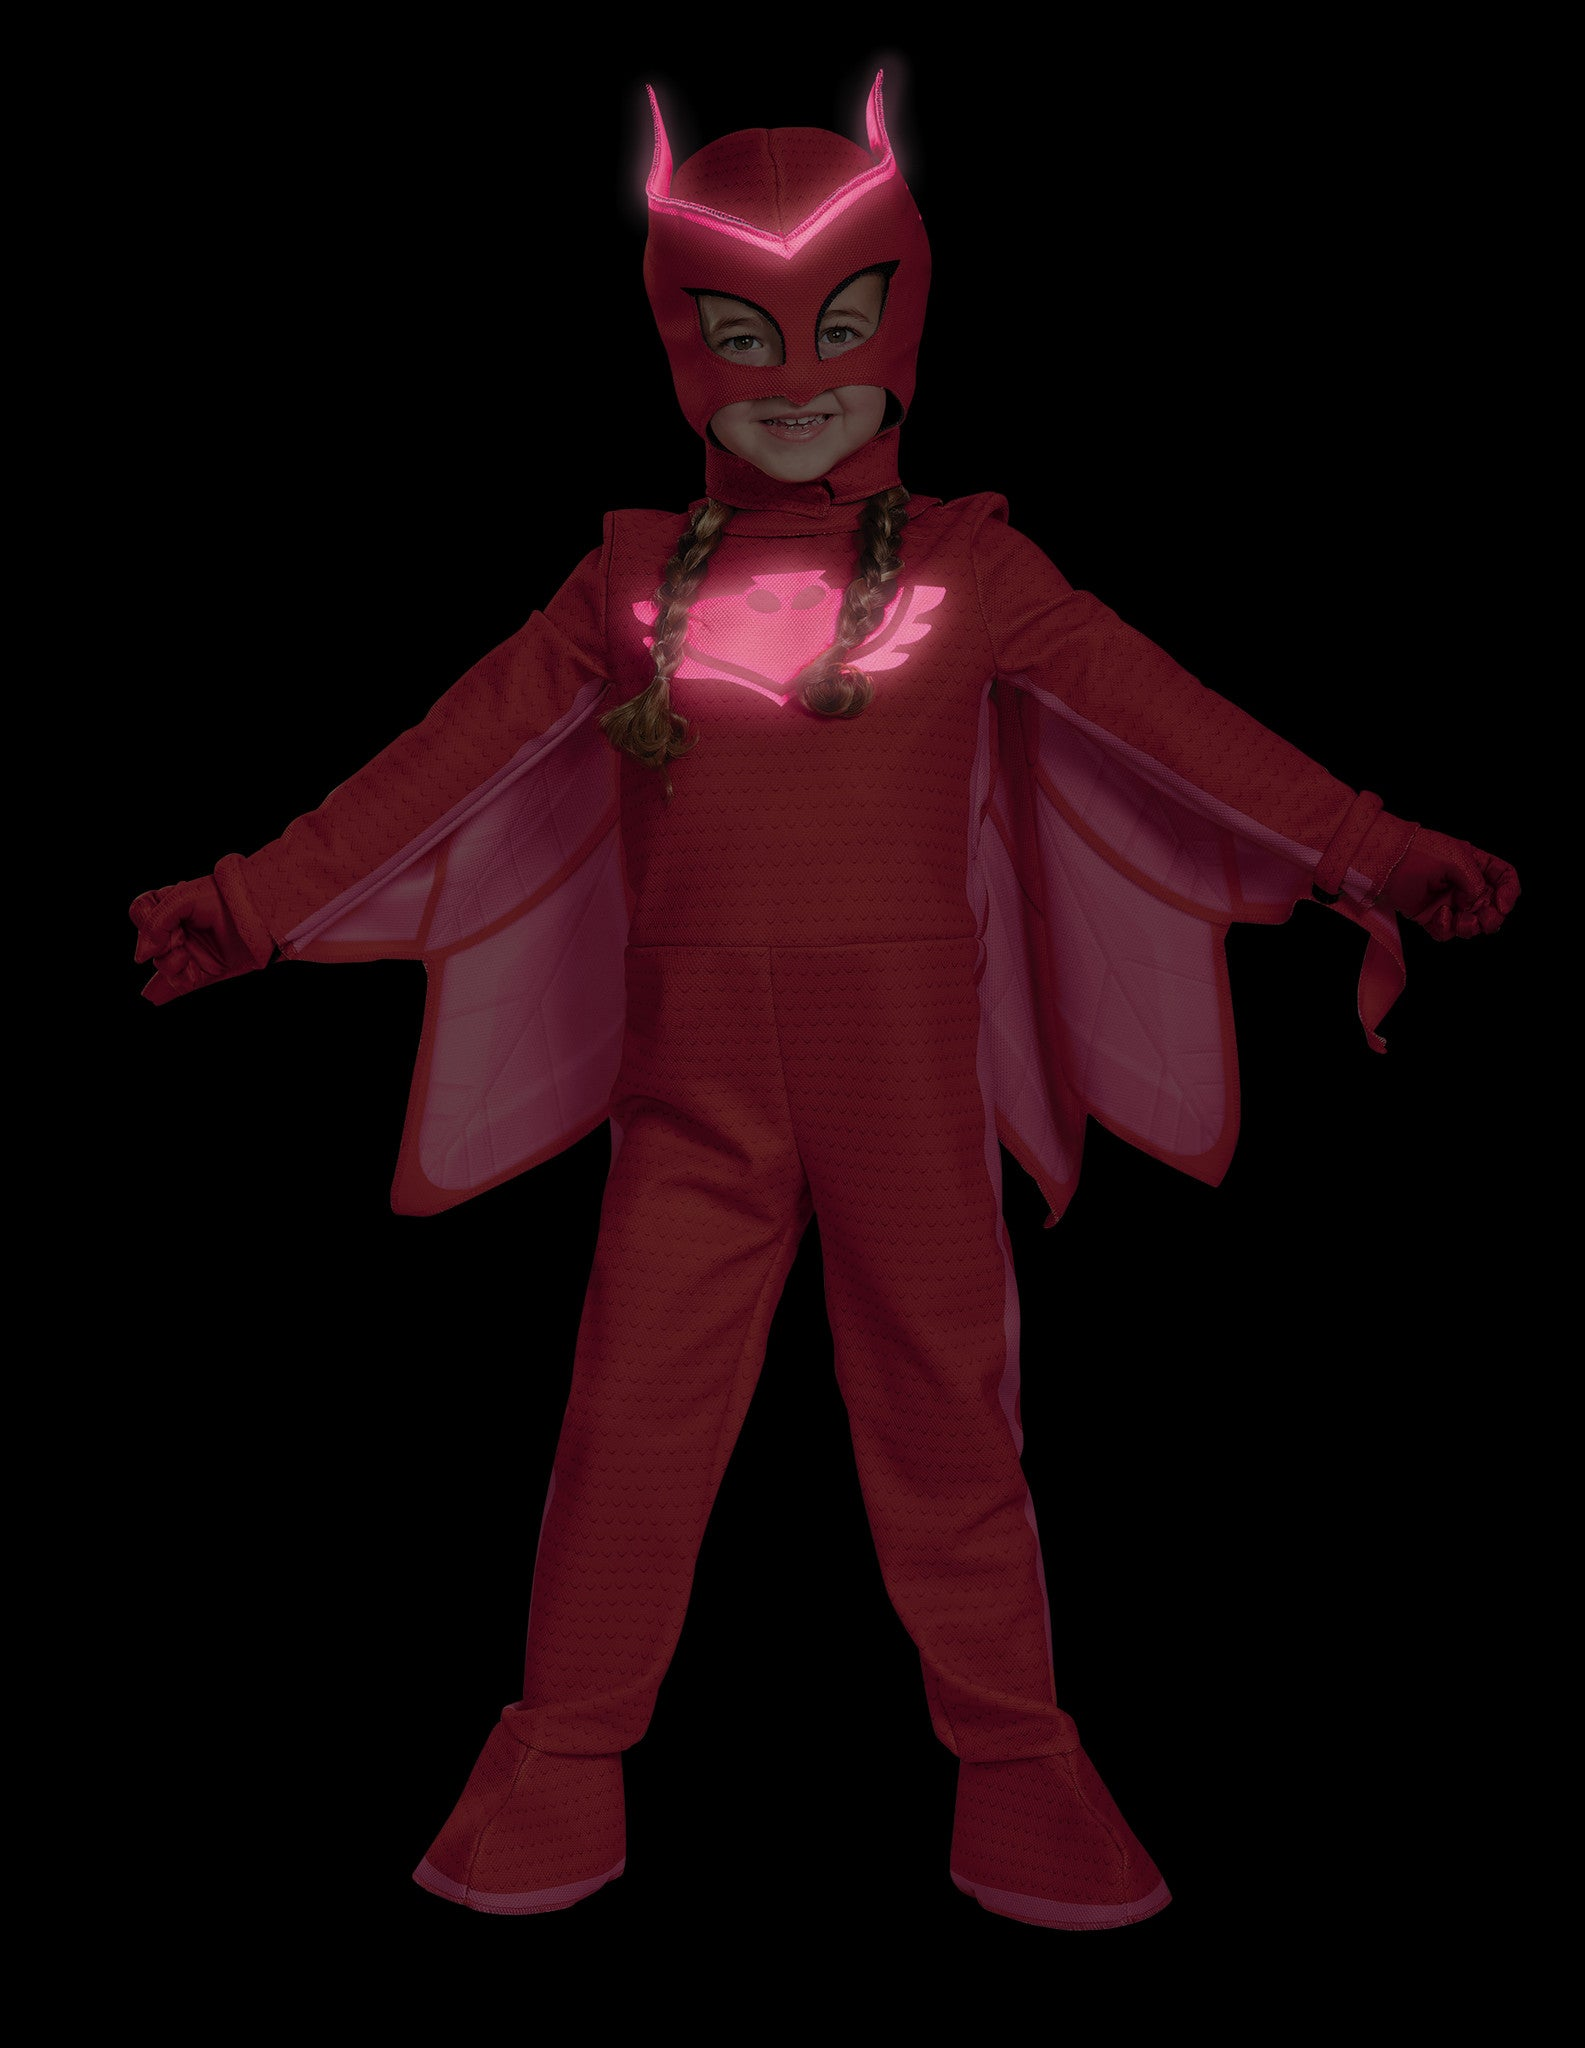 Girls PJ Masks Deluxe Owlette Costume